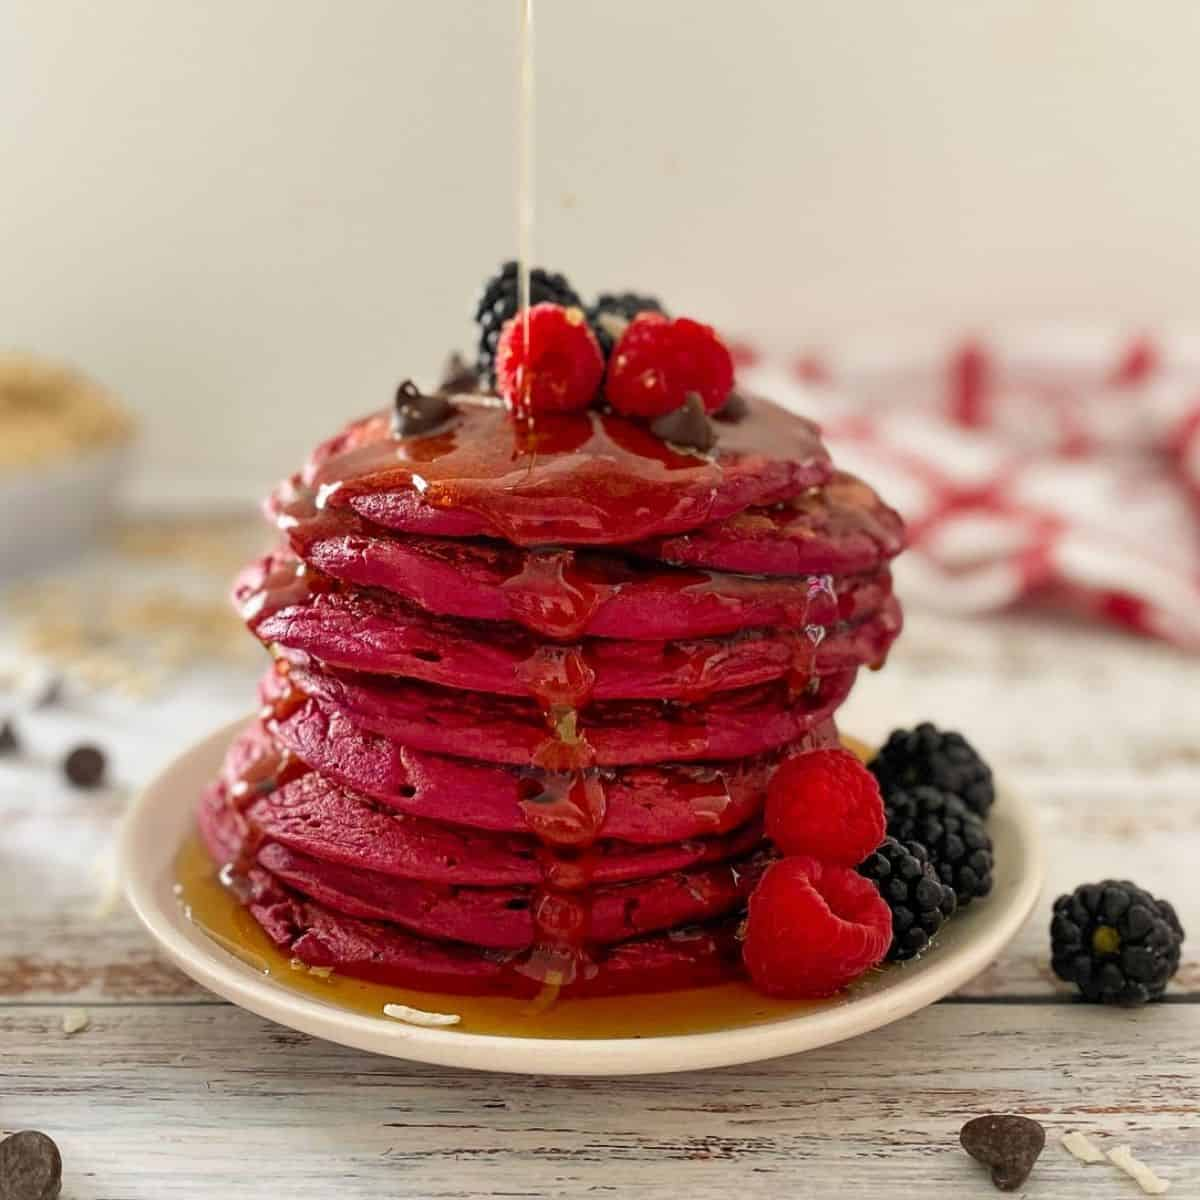 pink pancakes stacked on white plate with syrup dripping down them.